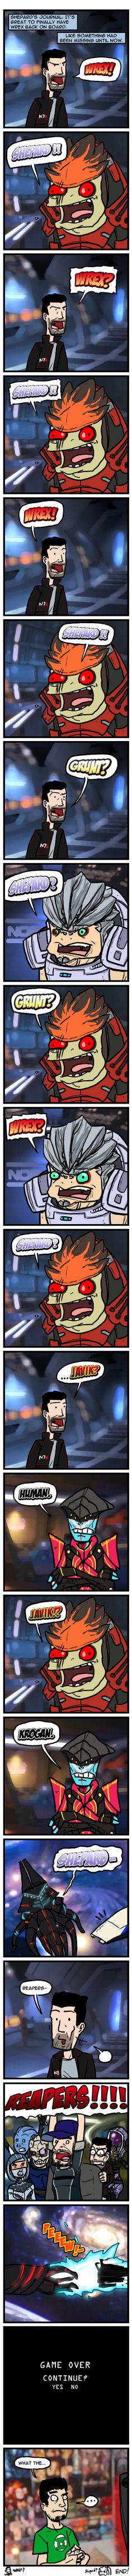 COMIX Shepard's Journal #2 by theEyZmaster.deviantart.com on @DeviantArt